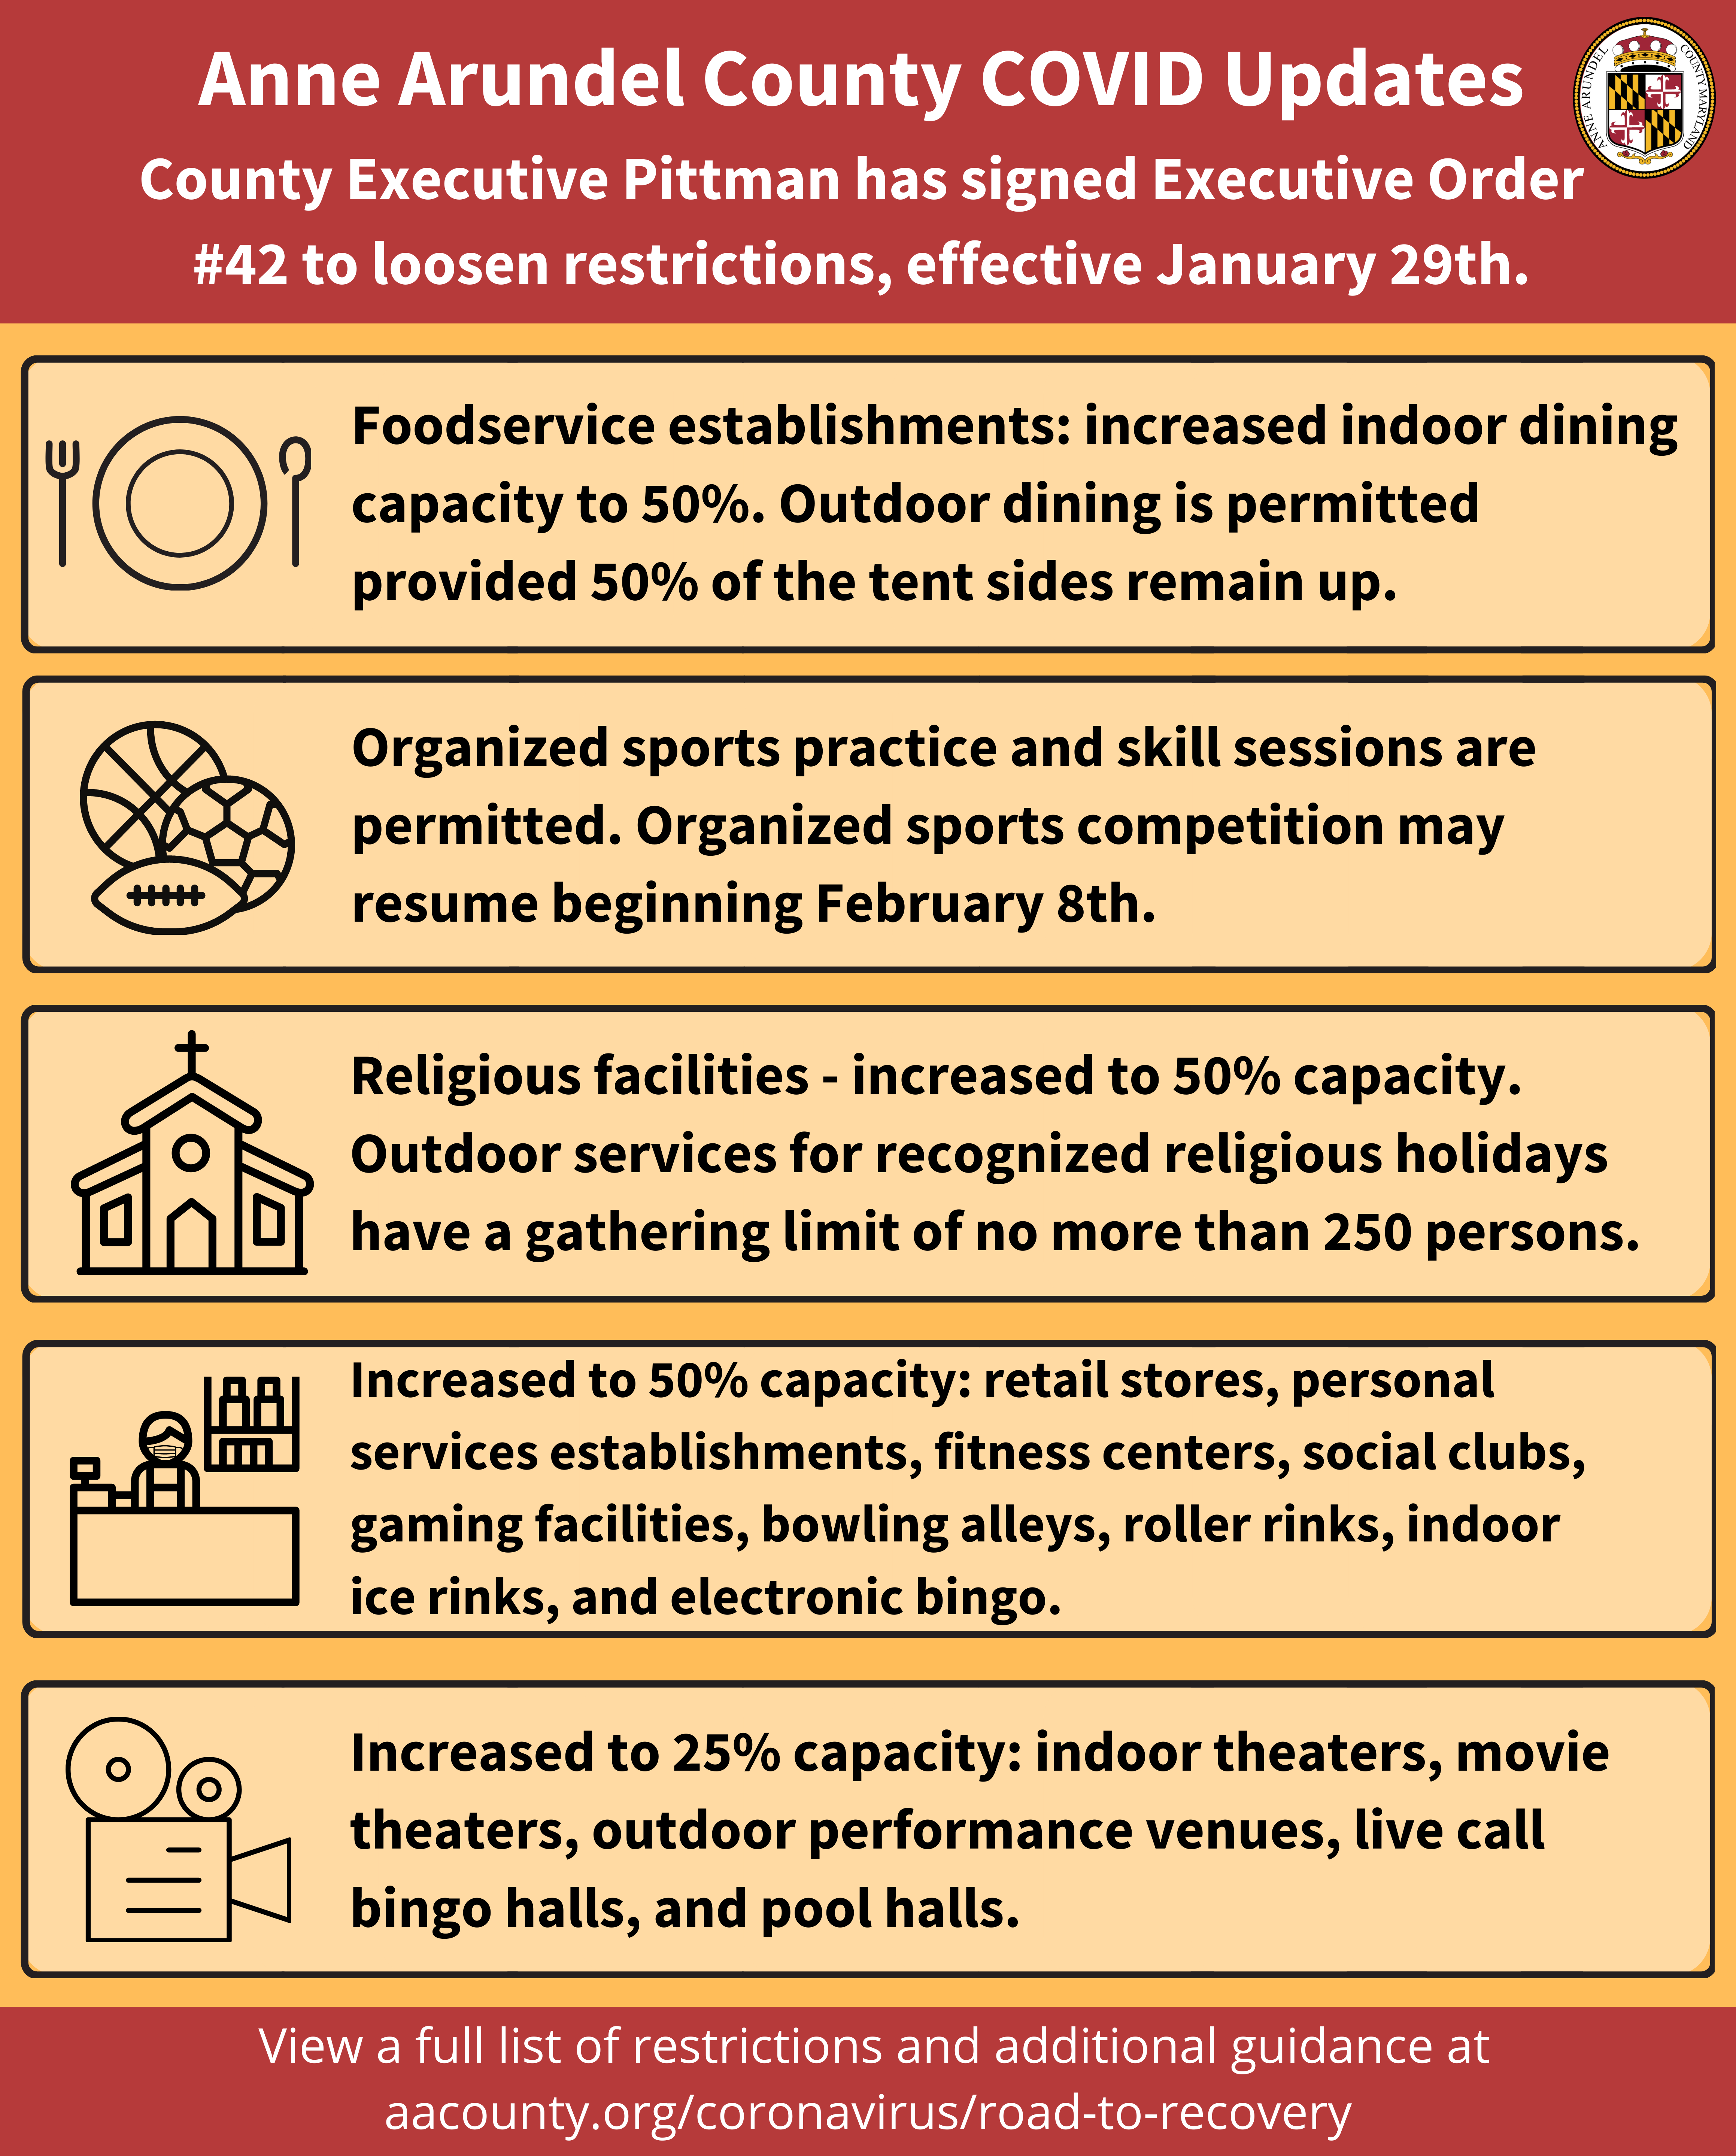 January 2021 COVID restrictions update for the Fort Meade MD area